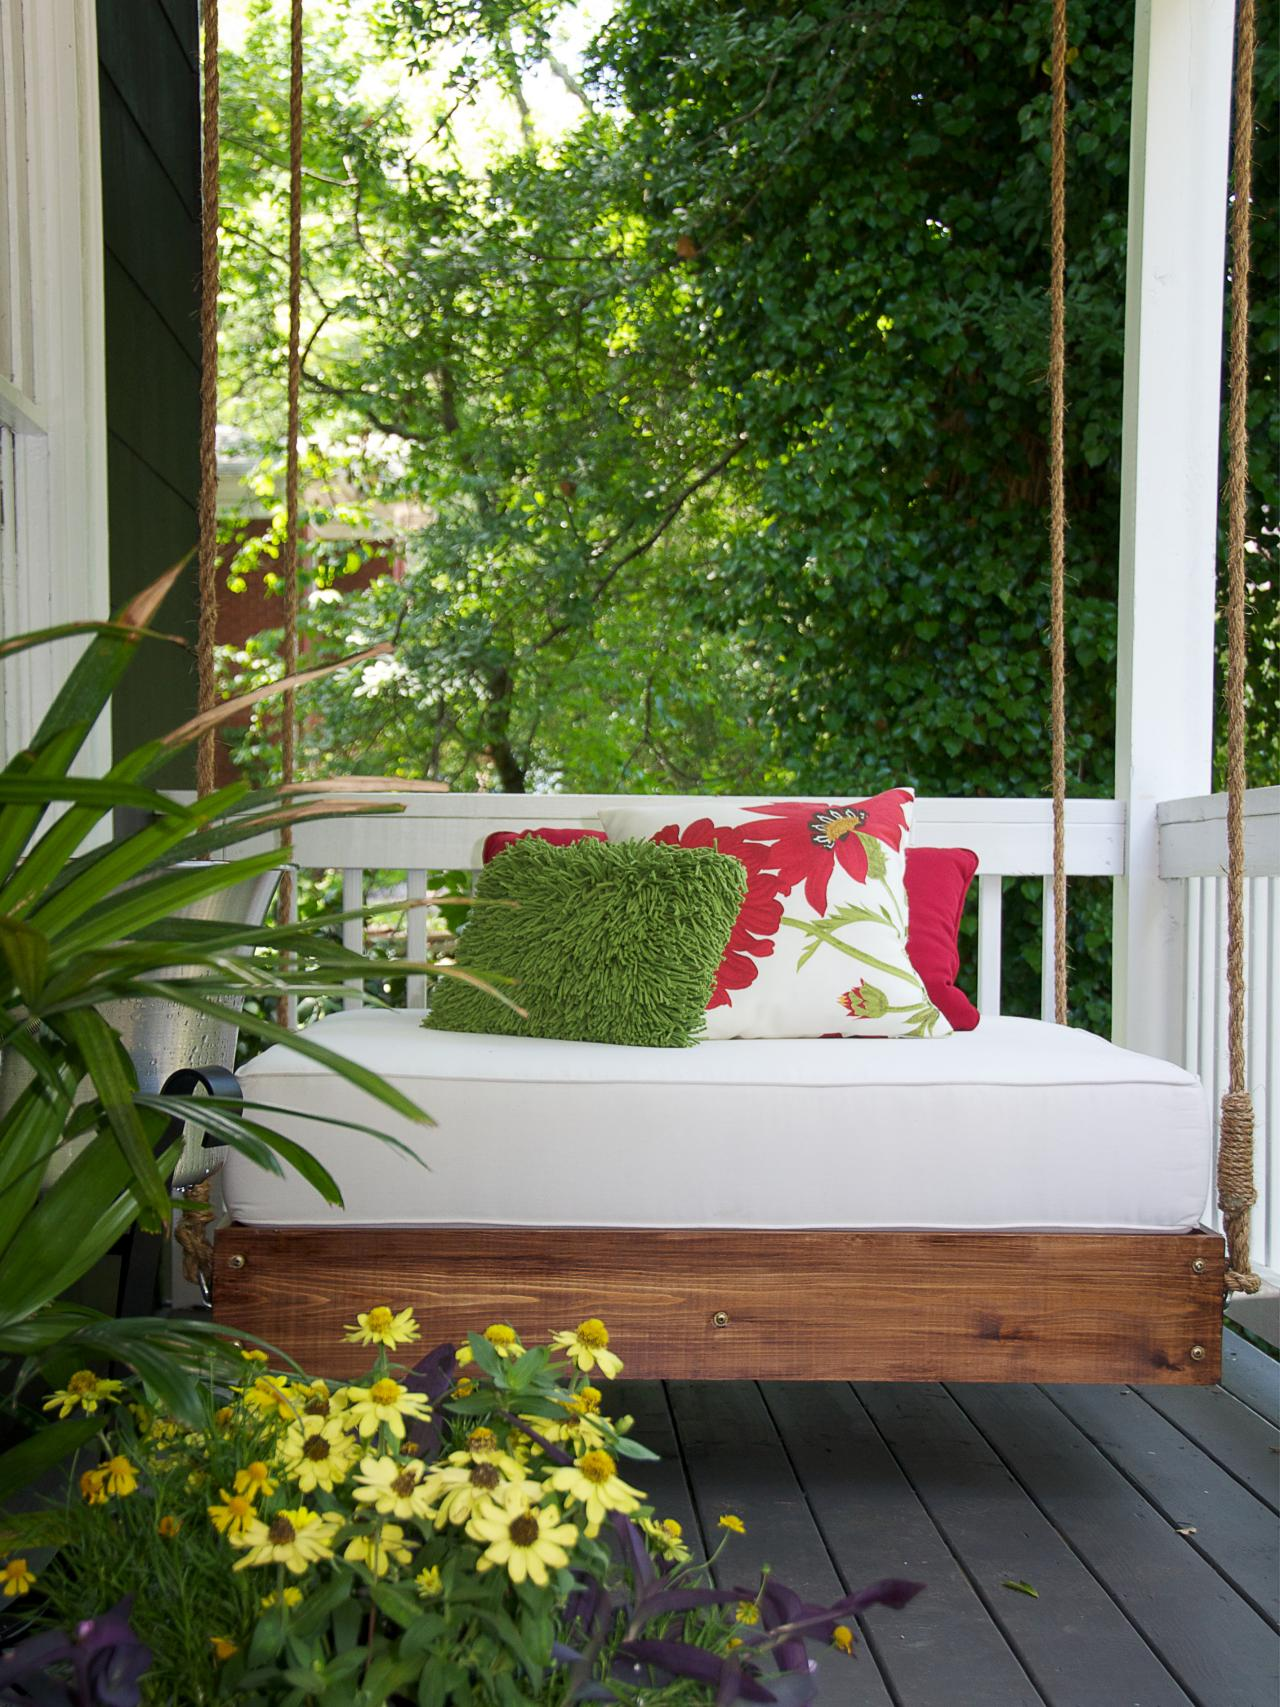 25 Shabby-Chic Style Outdoor Design Ideas - Decoration Love on Chic Patio Ideas id=33317